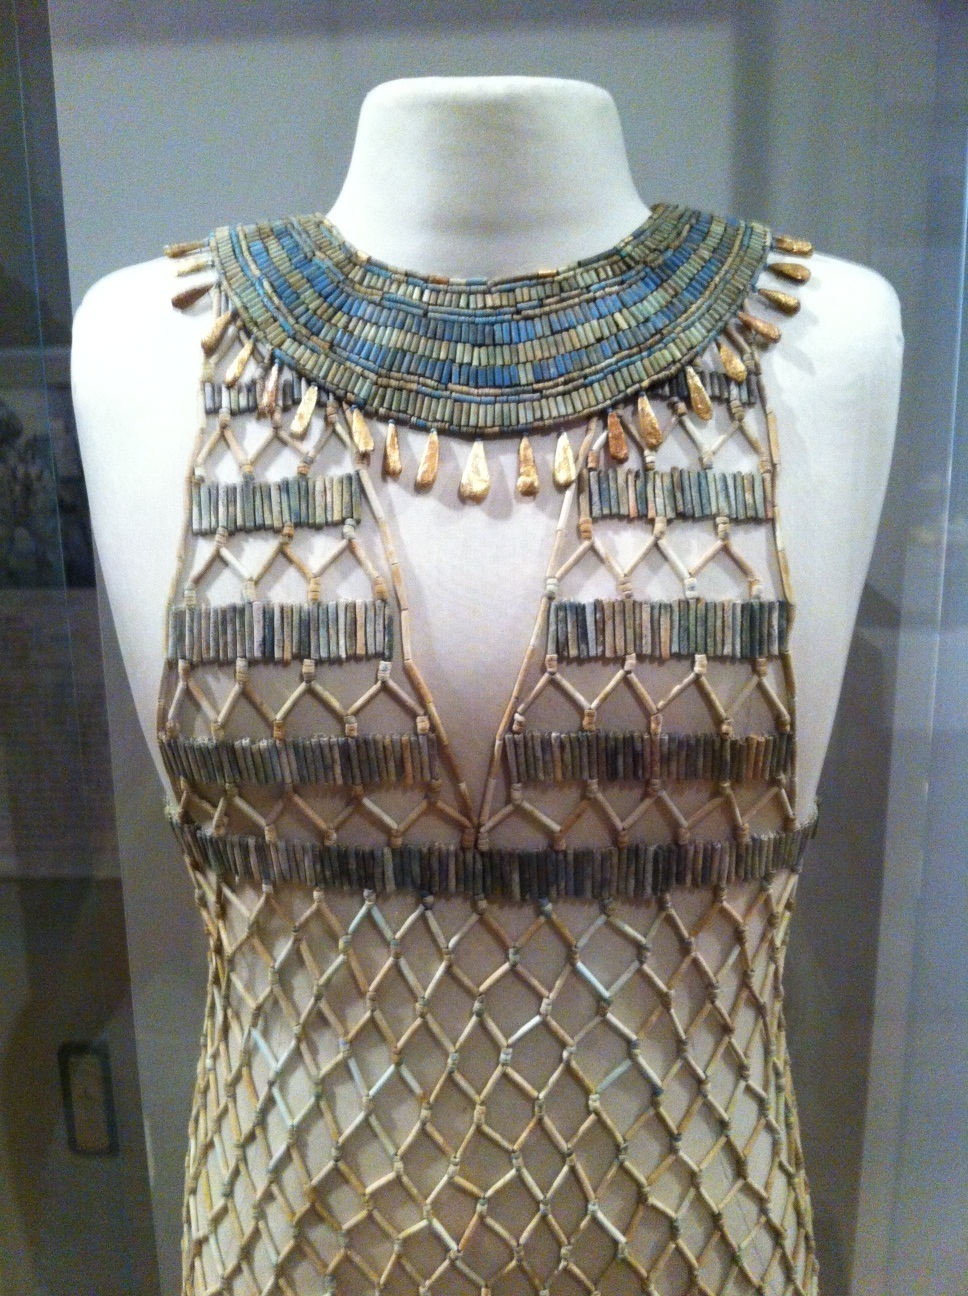 Detail, bead-net dress and broad collar whose remains were found during excavations of the tomb of a female interred at Giza during the reign of King Khufu, ca. 2500 BCE. Both pieces were reconstructed by Millicent Jick (1928-2010), a volunteer gallery instructor at the Museum of Fine Arts, Boston.  The cylinder and disk beads are Egyptian faience. The pendants on the broad collar are made of gold. Image courtesy Museum of Fine Arts, Boston.